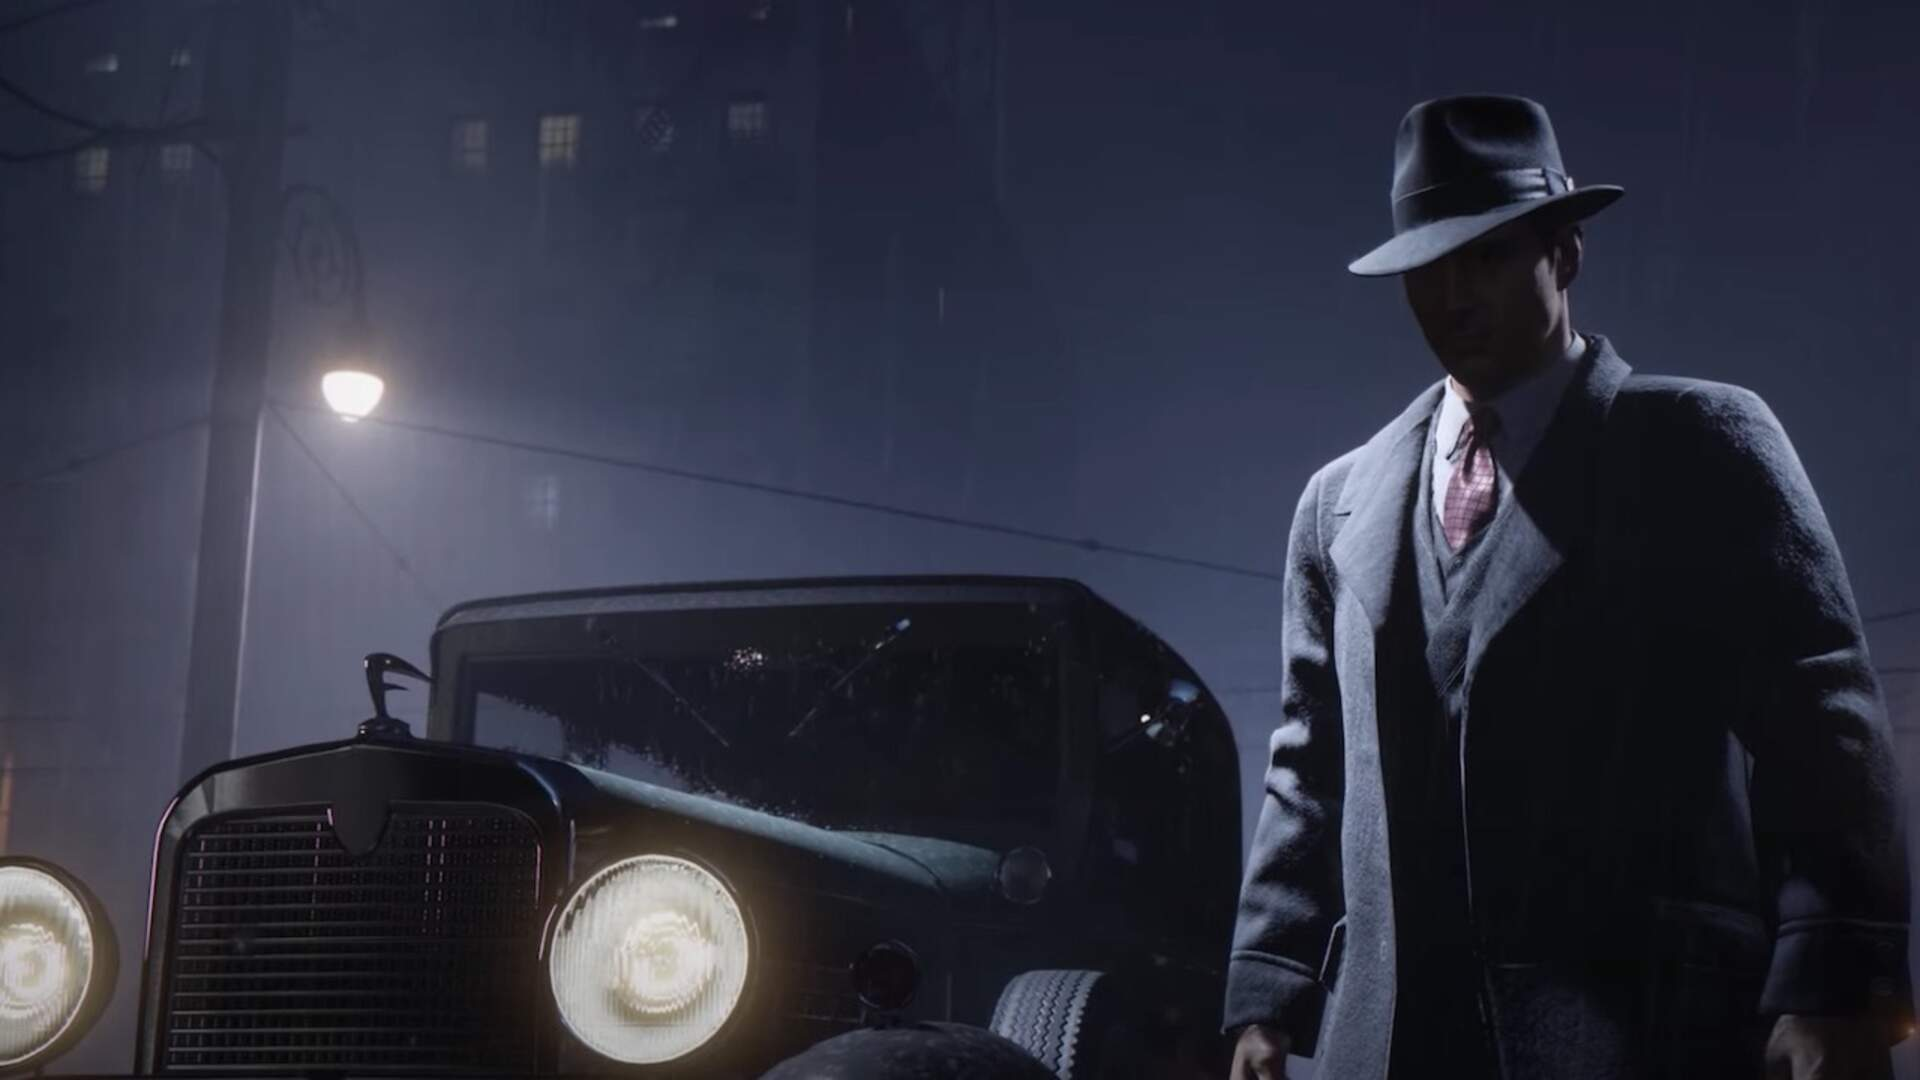 Mafia: Trilogy Collection Announced, More Details Coming Next Week